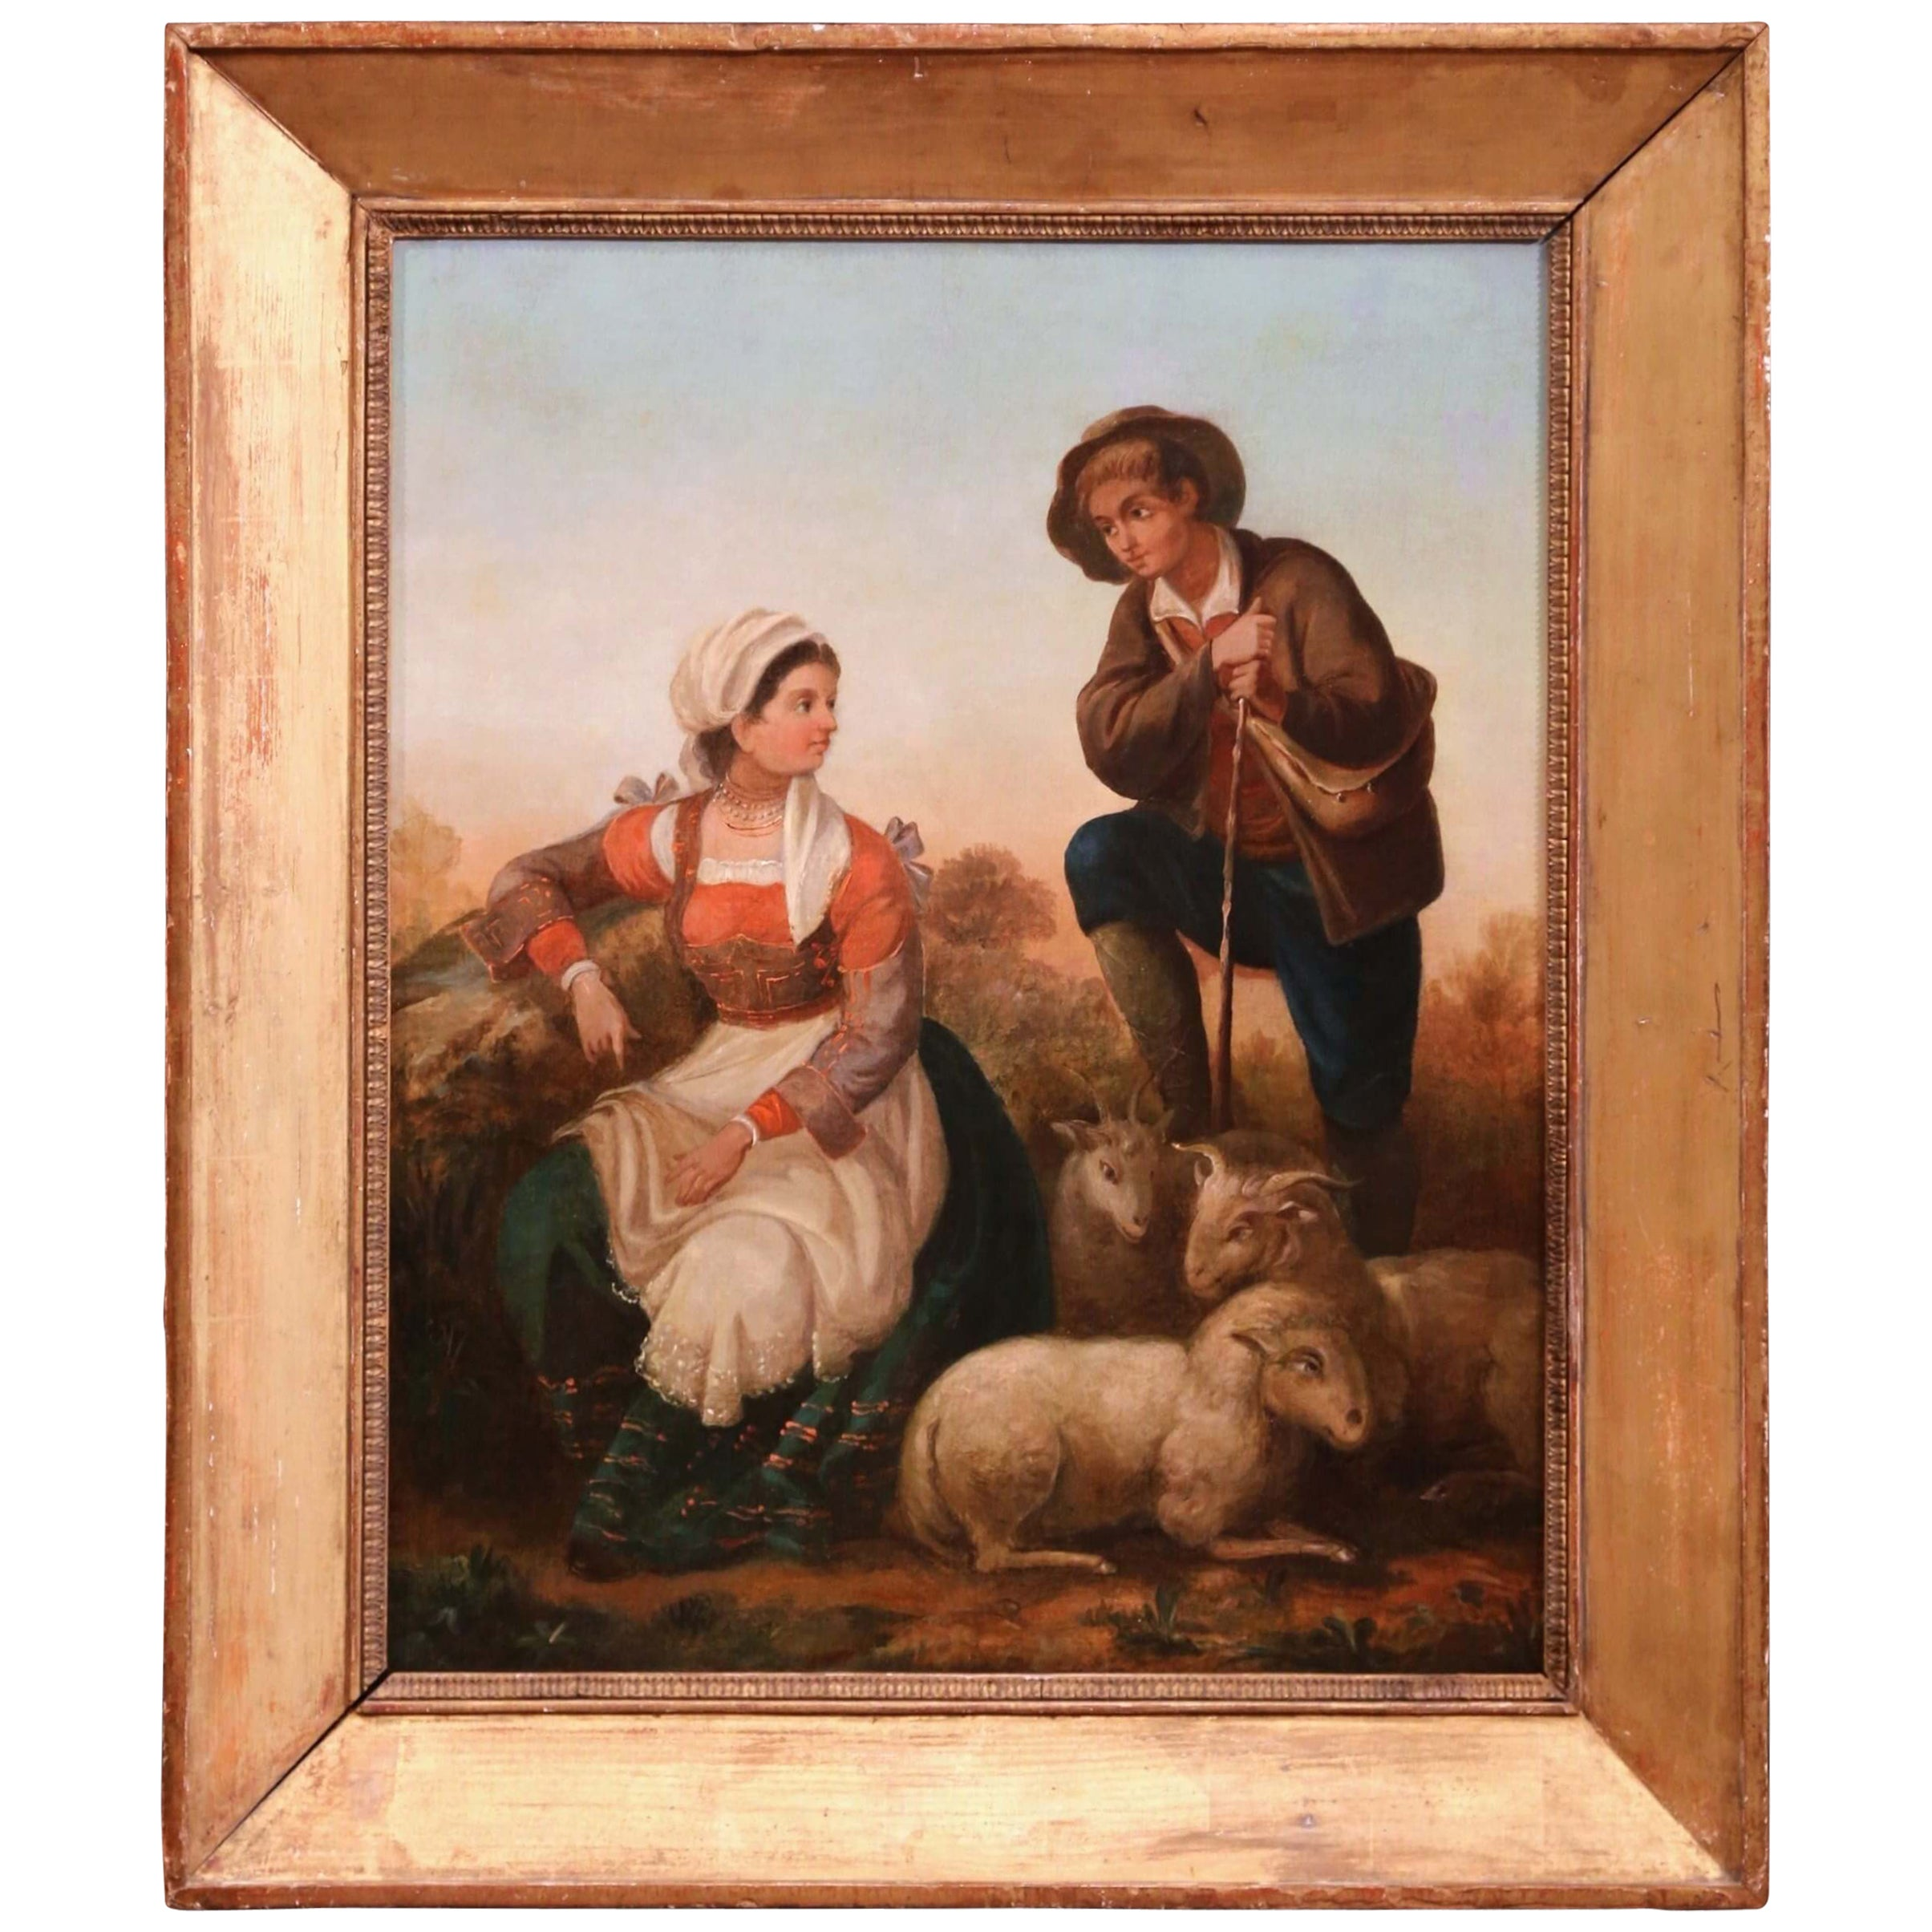 19th Century French Shepherds and Sheep Oil on Canvas Painting in Gilt Frame